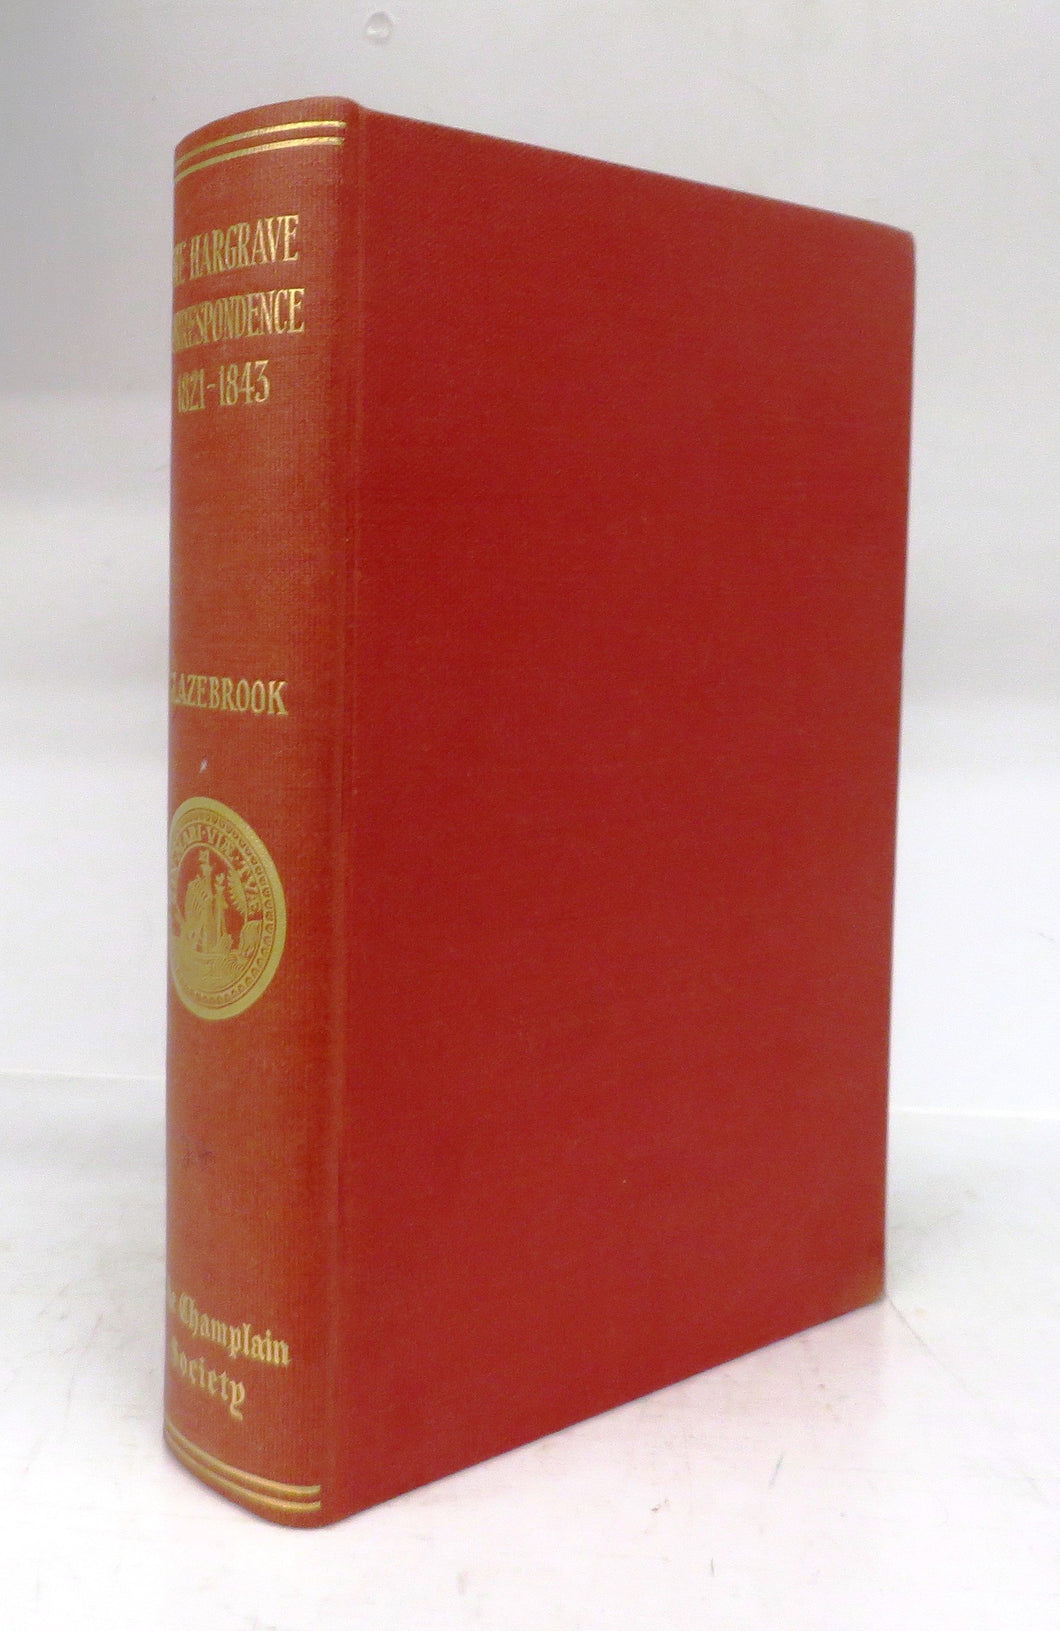 The Hargrave Correspondence 1821-1843